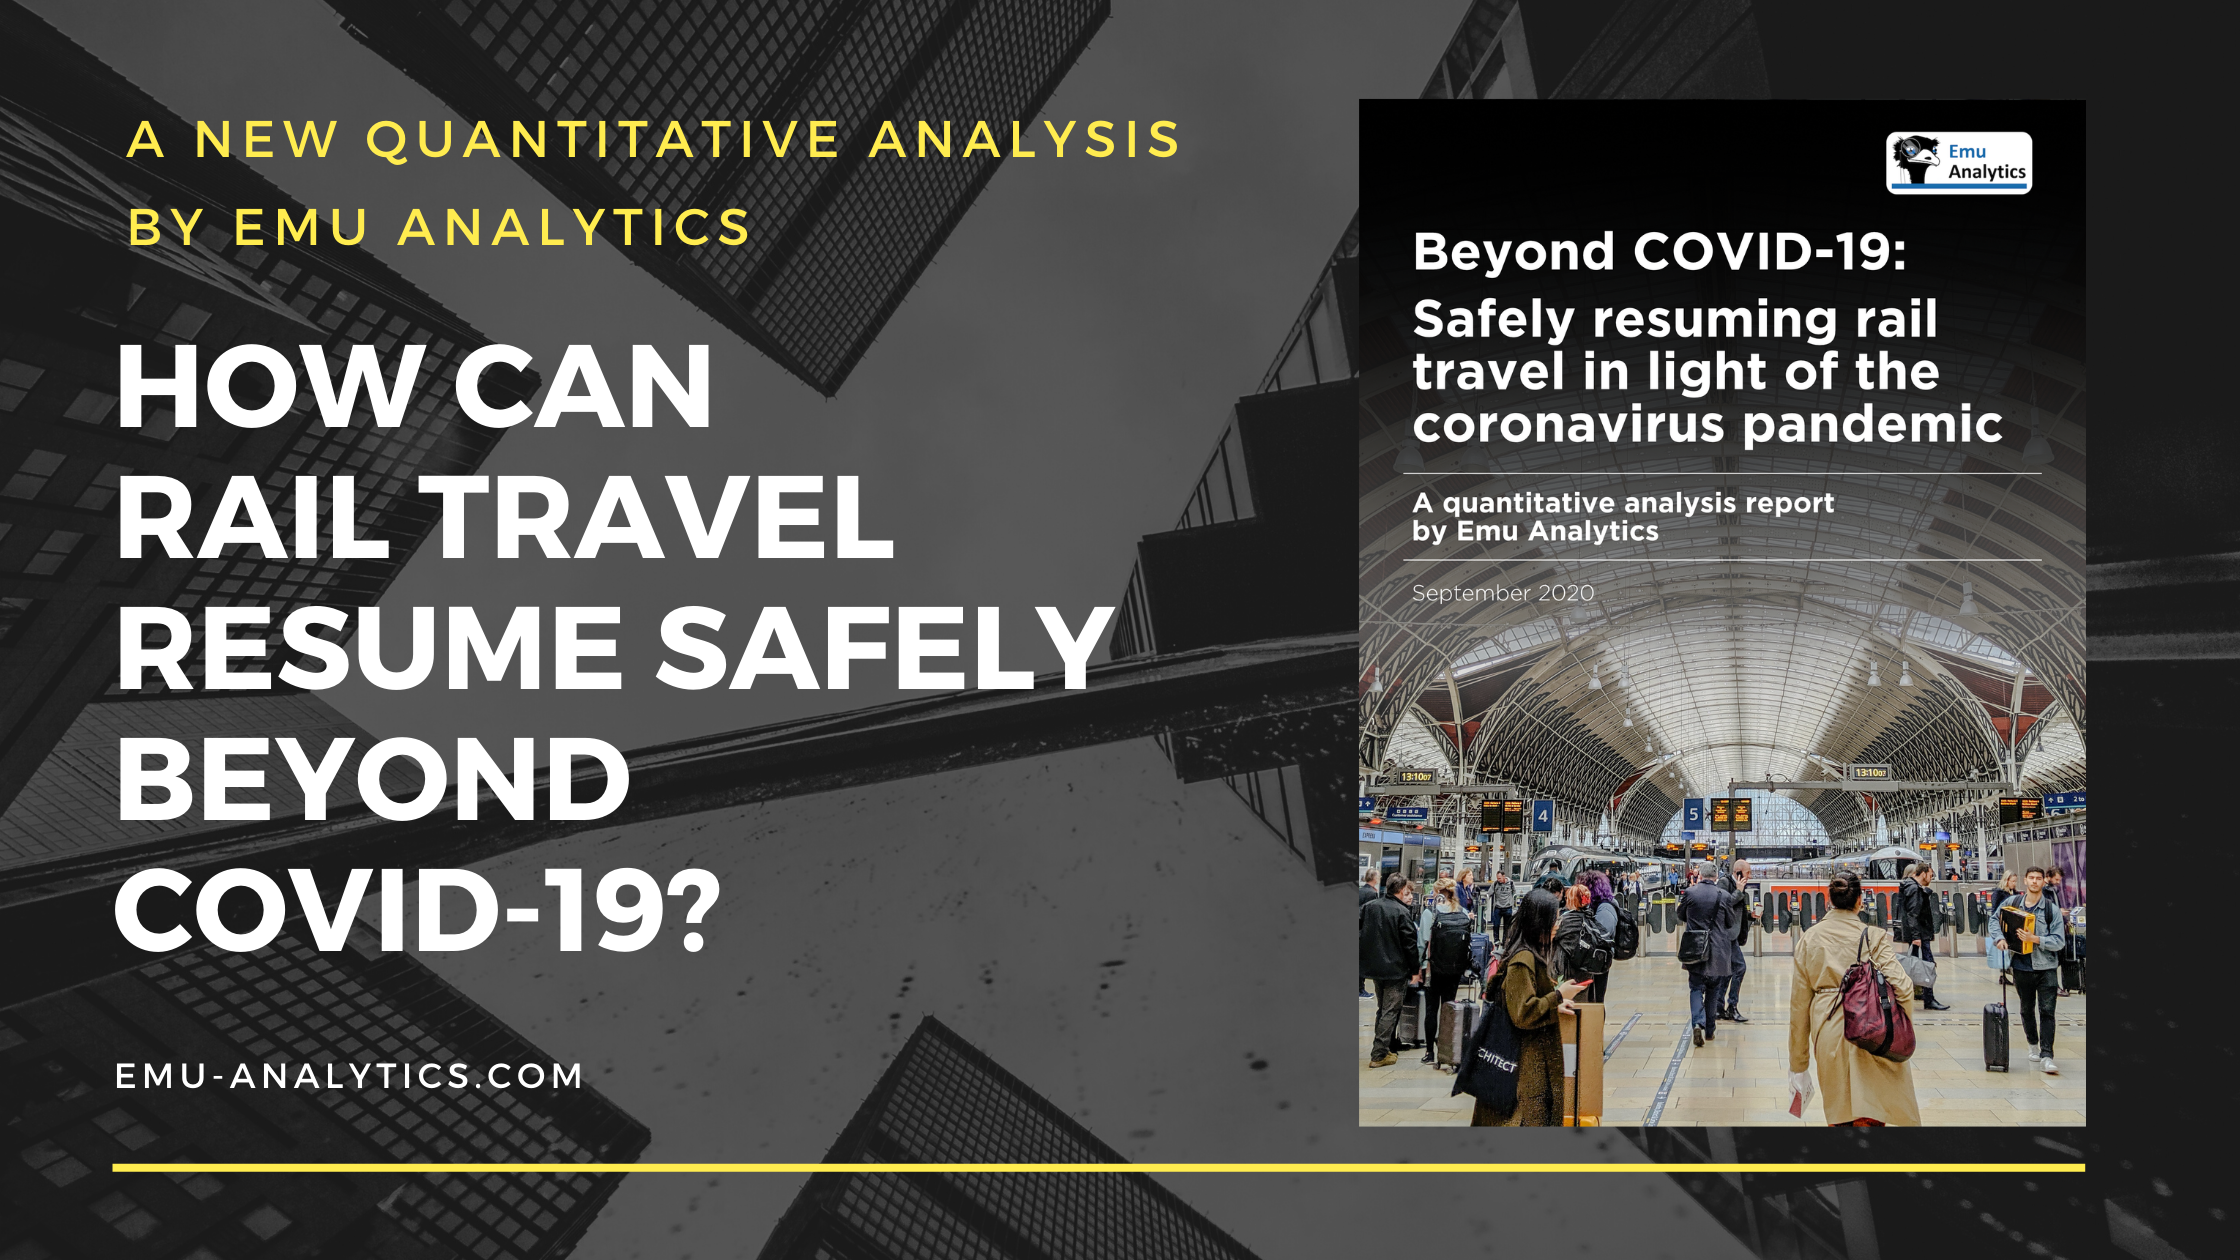 How can rail travel resume safely beyond COVID-19? (A new quantitative analysis by Emu Analytics)